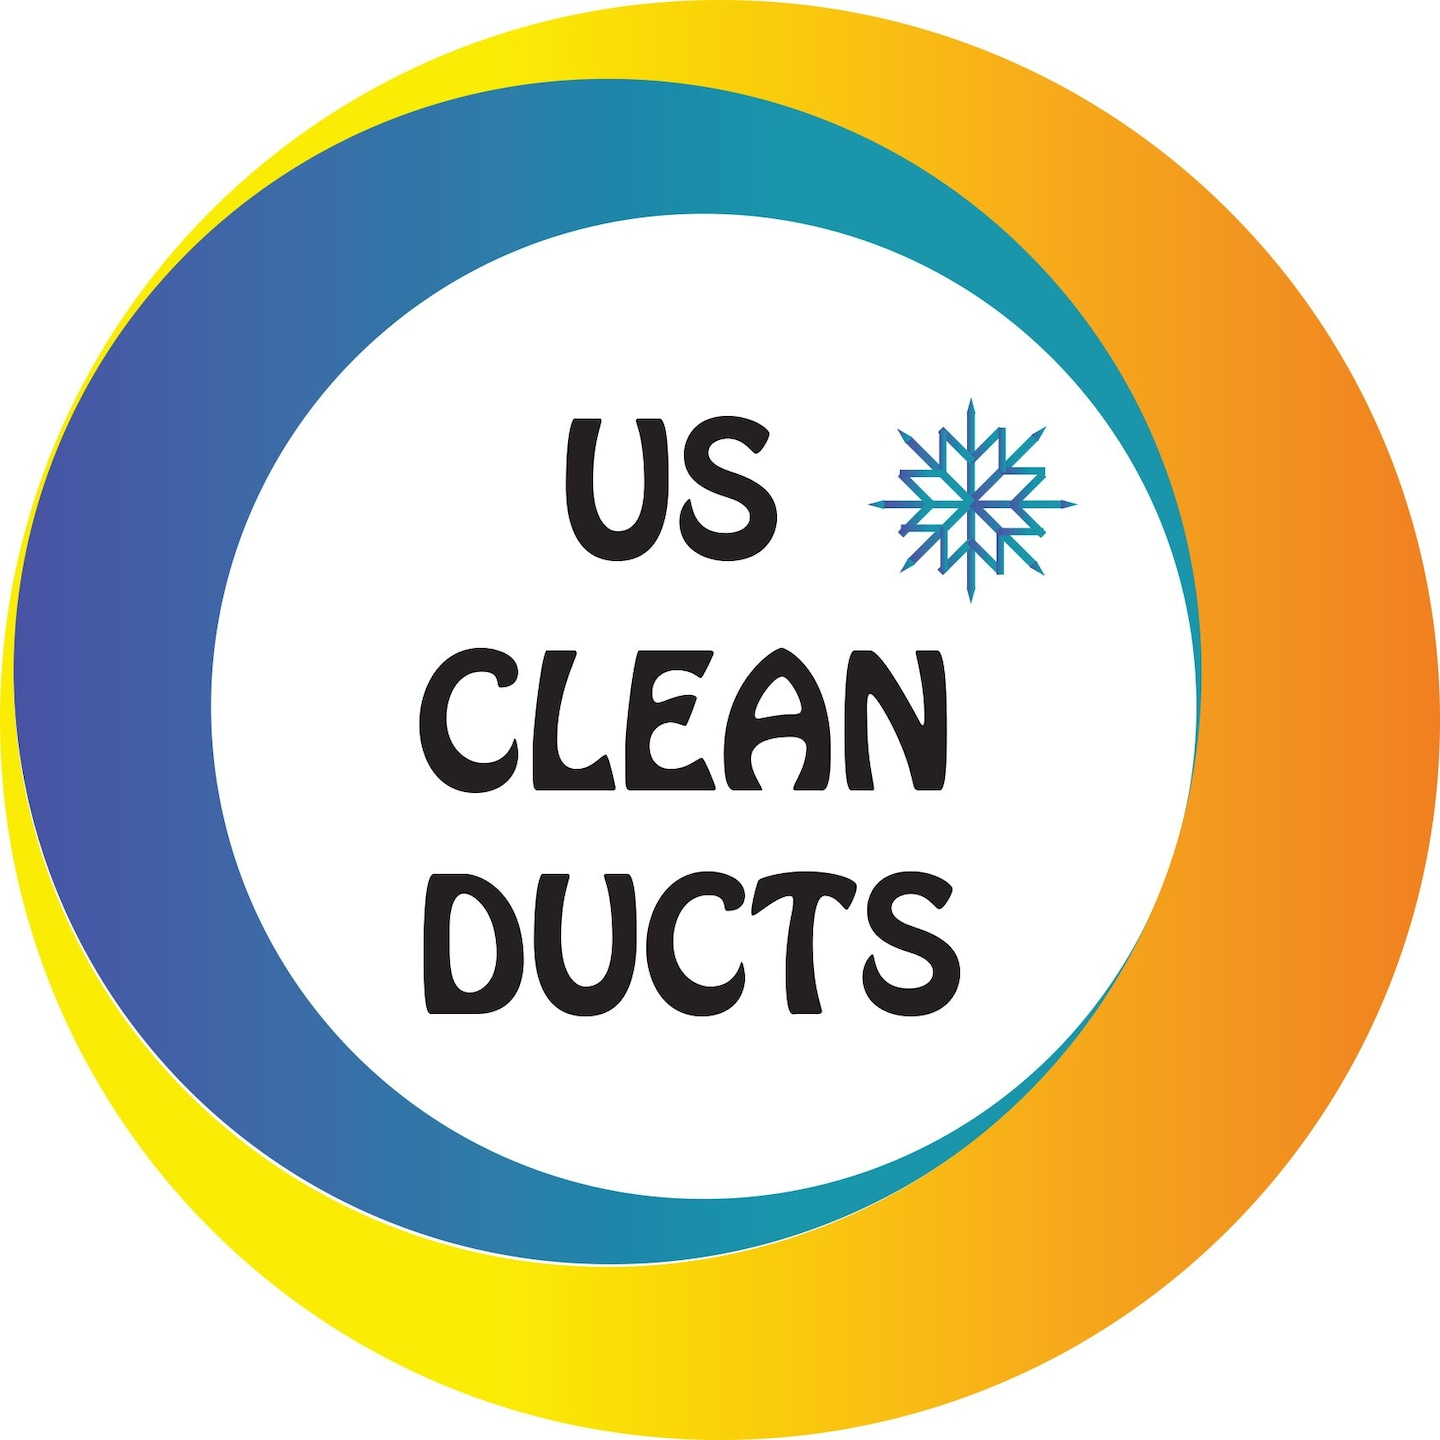 US Clean Ducts